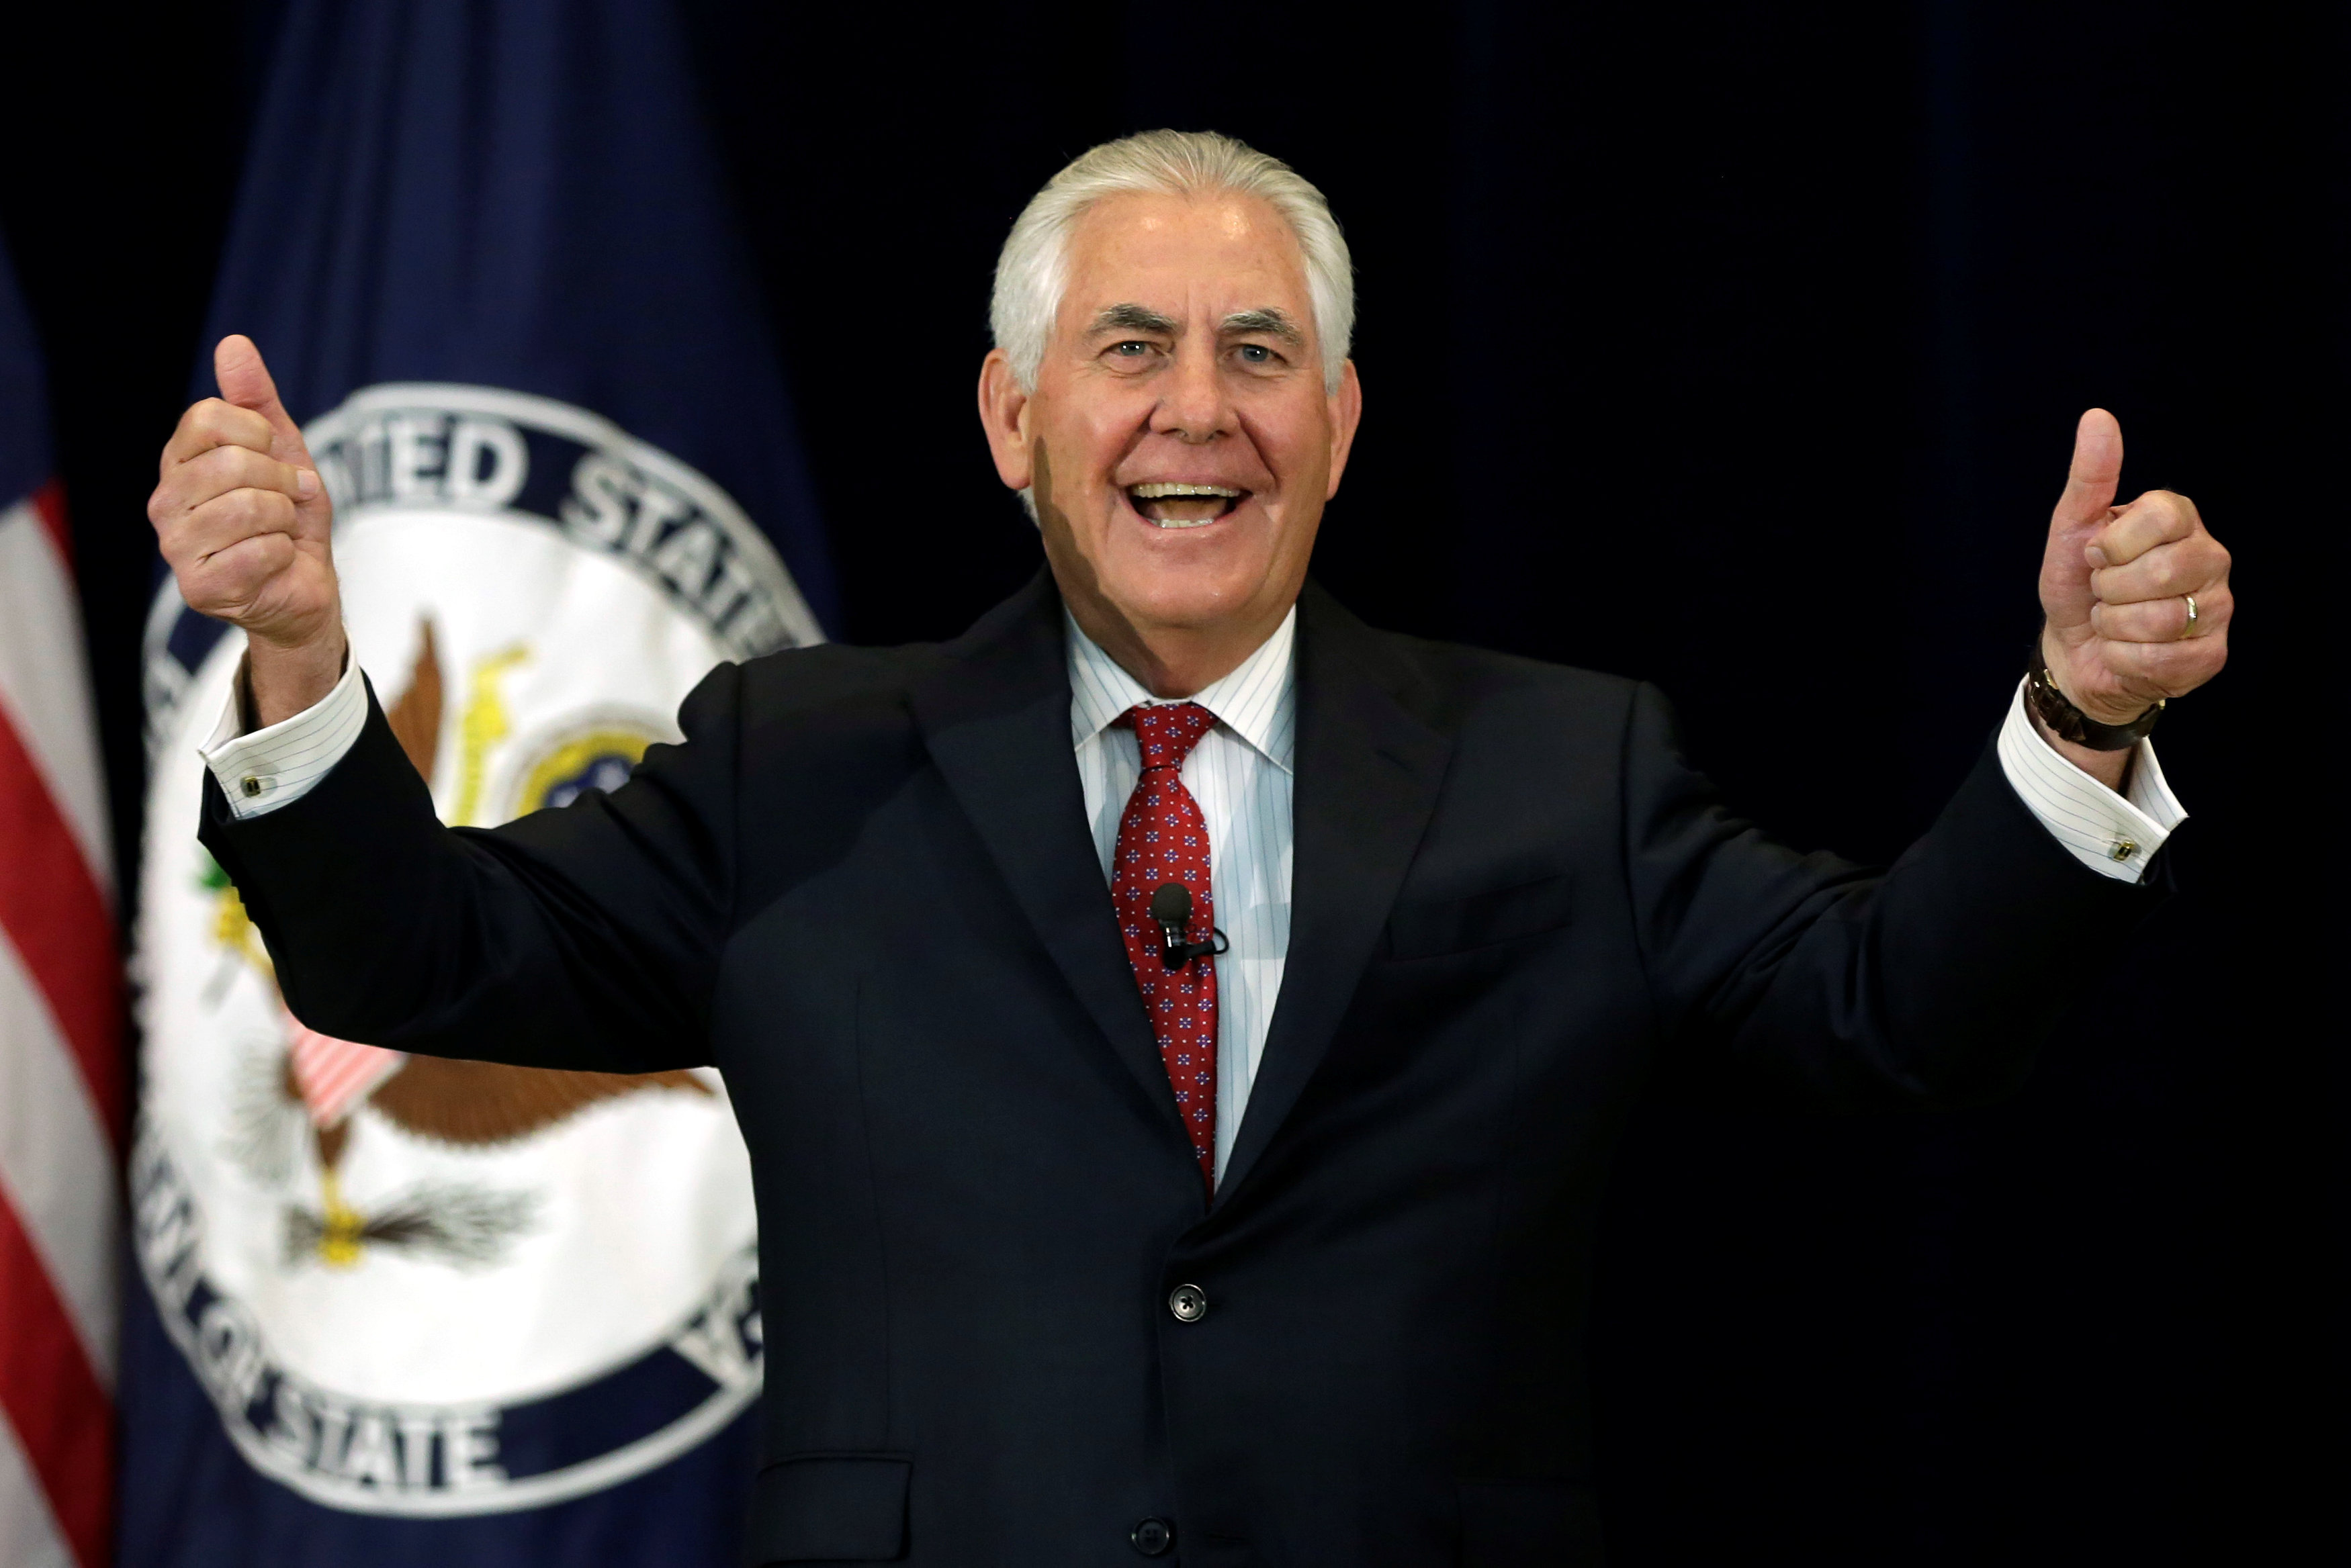 Secretary of State Rex Tillerson gestures before delivering remarks to the employees at the State Department in Washington on May 3, 2017. (REUTERS/Yuri Gripas)